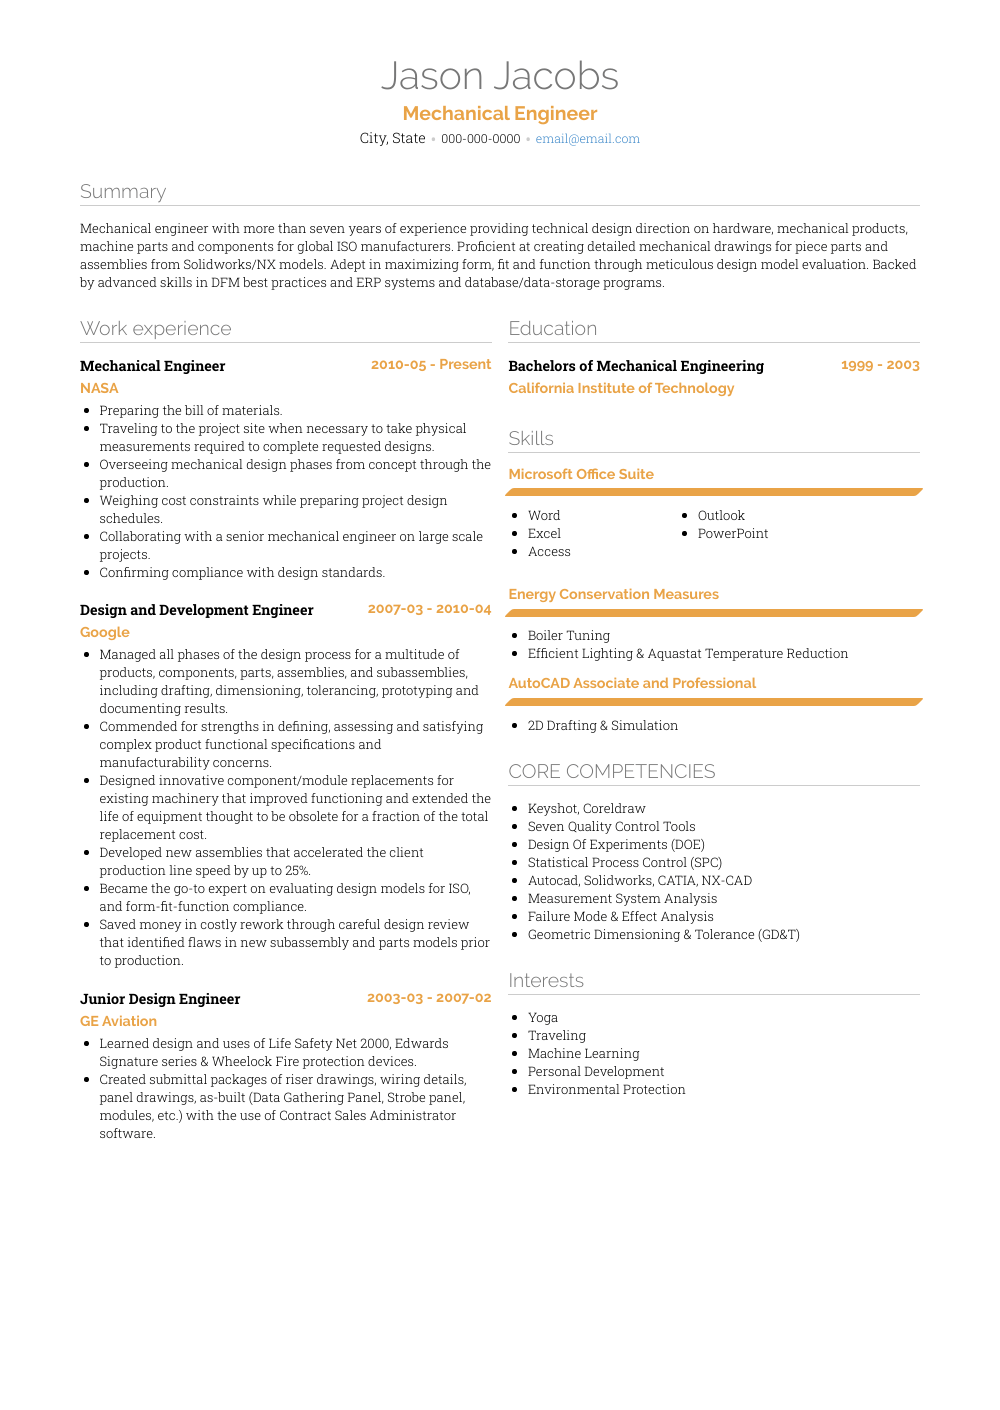 Mechanical Design Engineer Resume Samples And Templates